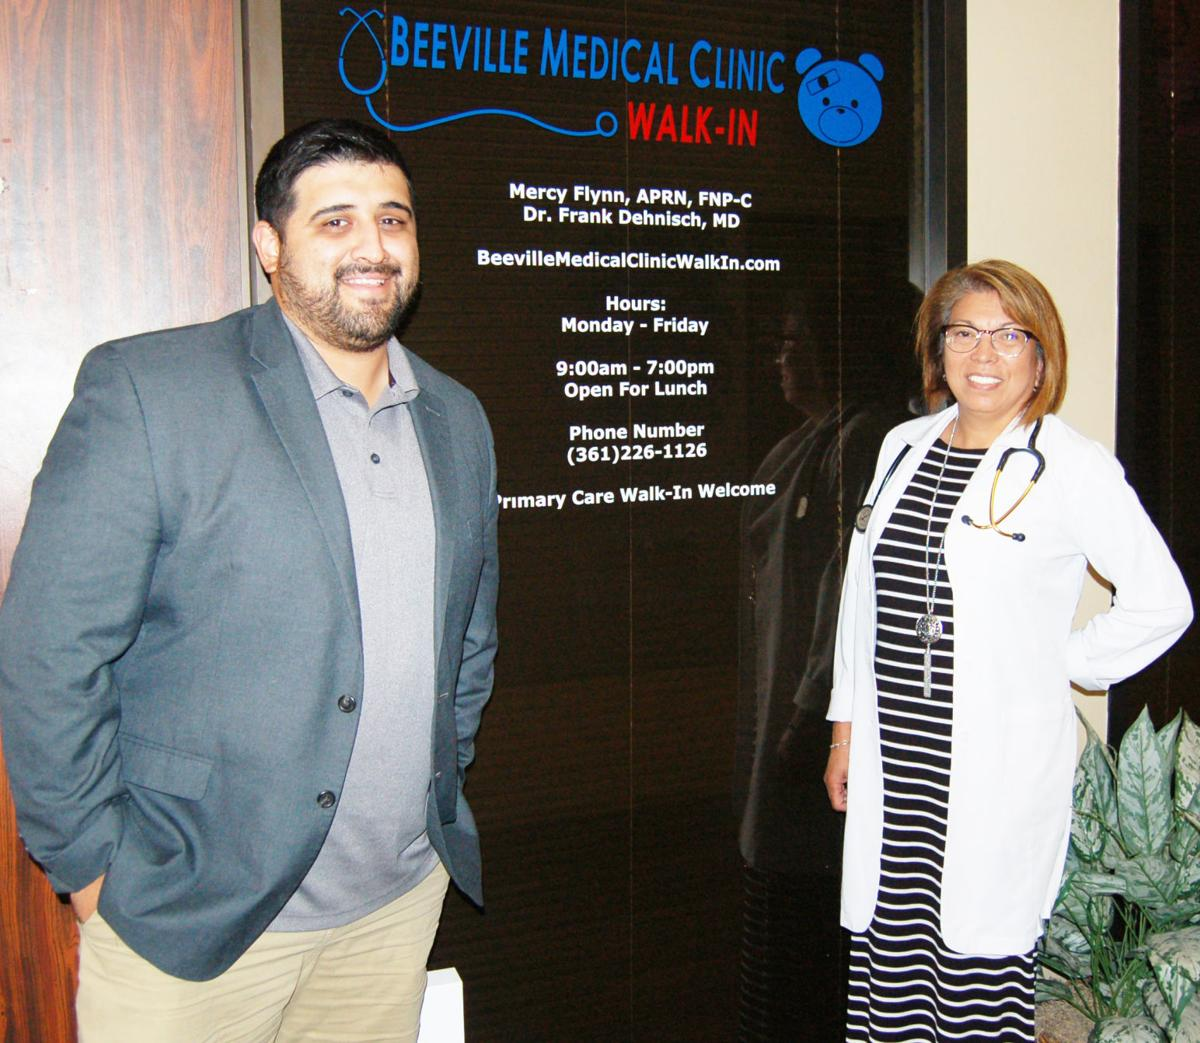 Clinic built to feel like home | Features | mysoutex com